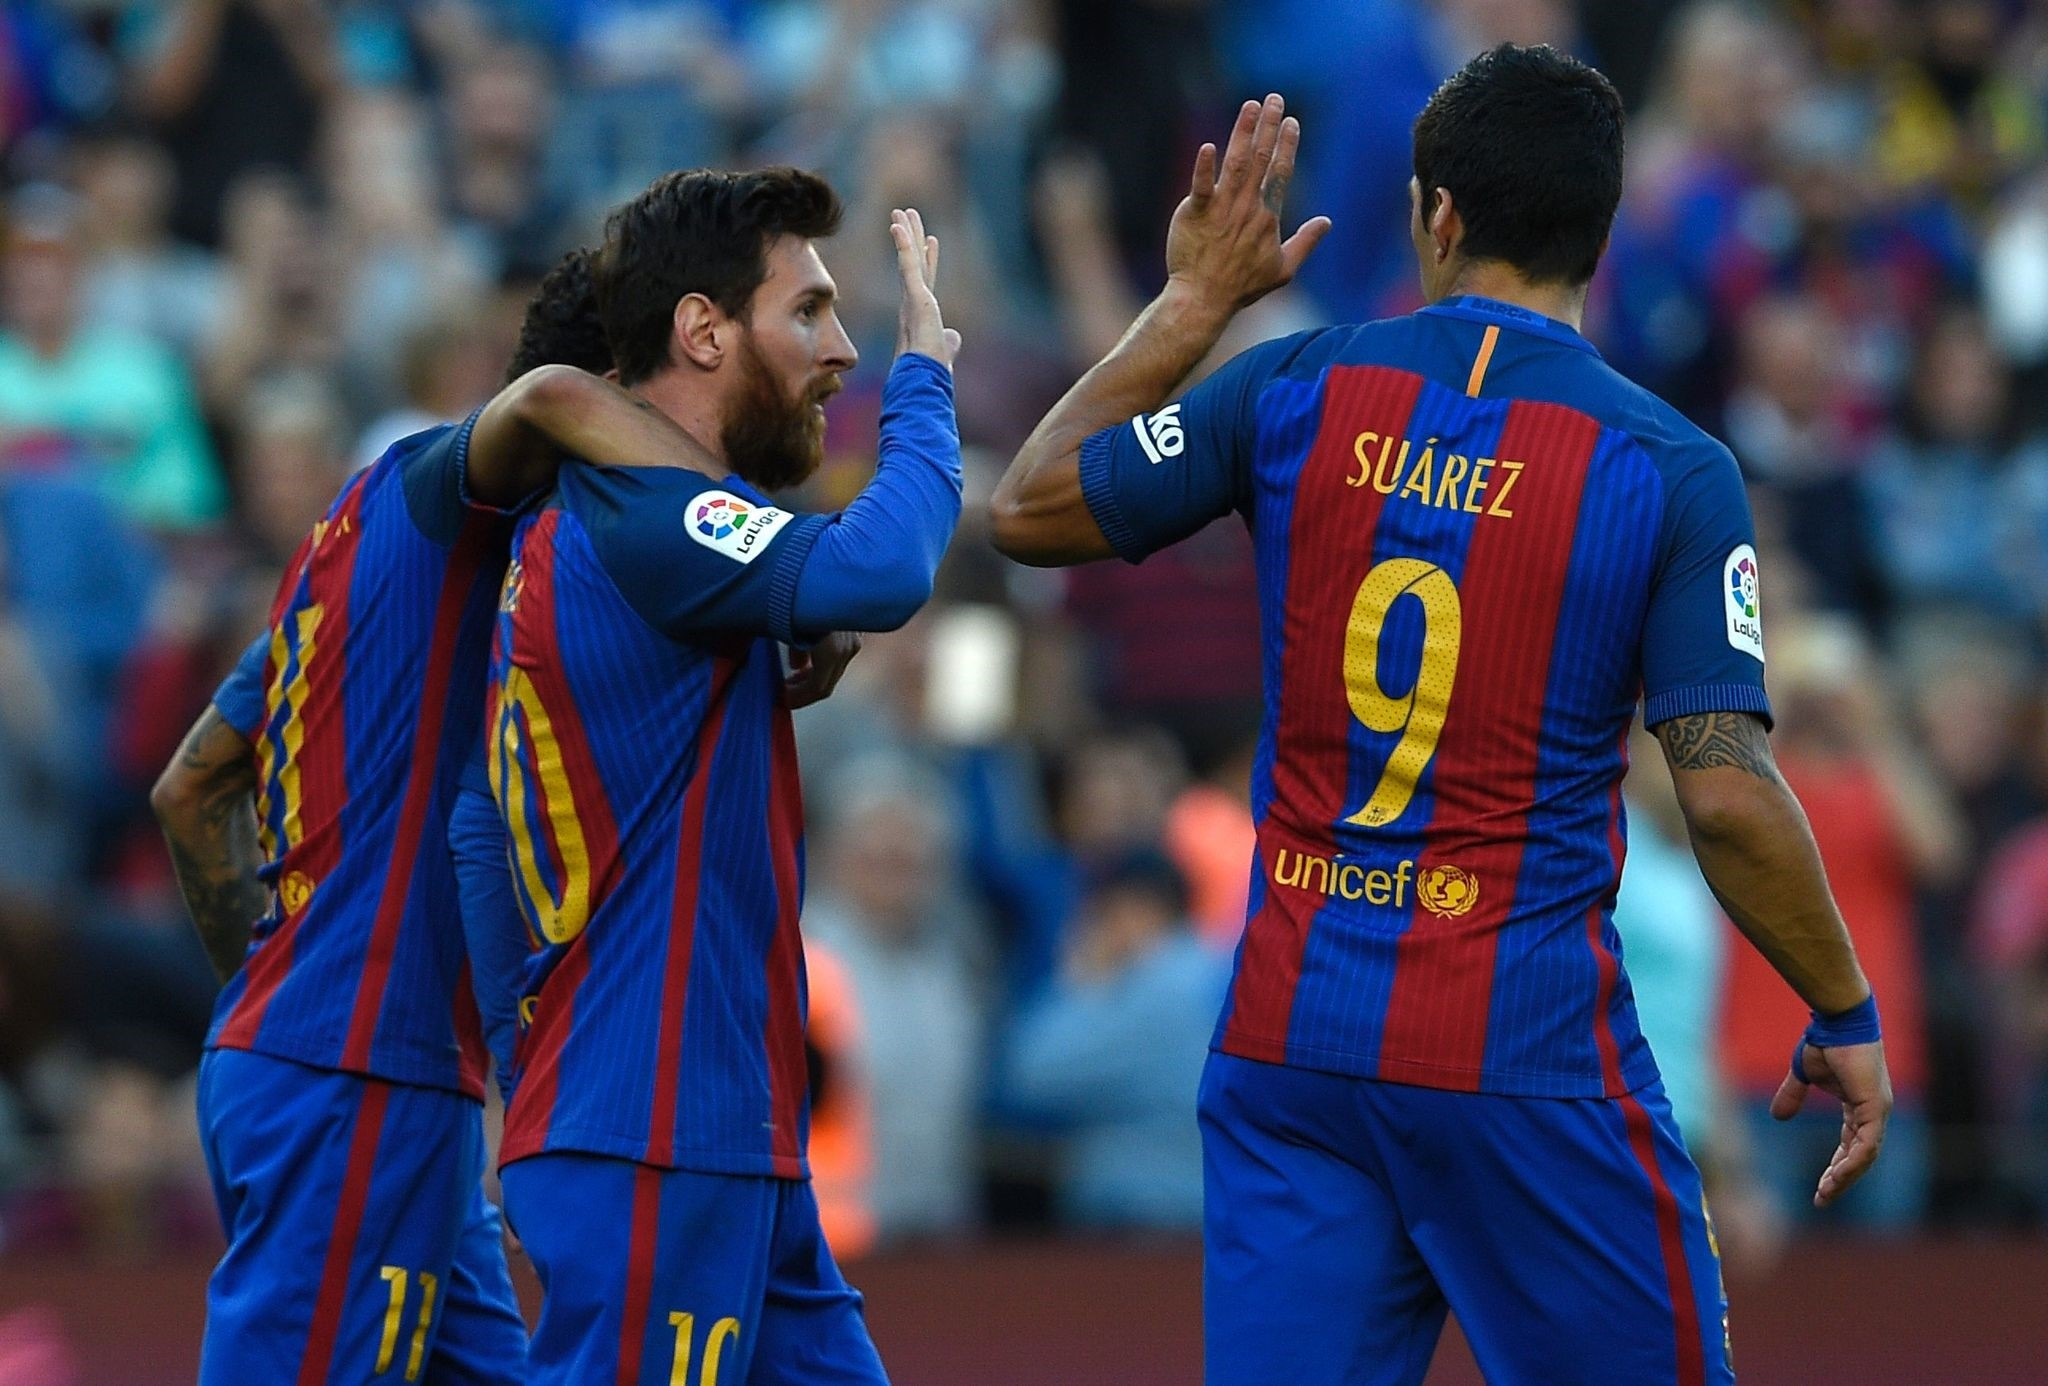 Messi (C) celebrates a goal with Luis Suarez (R) and Neymar during the Spanish league football match FC Barcelona vs Villarreal CF at the Camp Nou stadium.